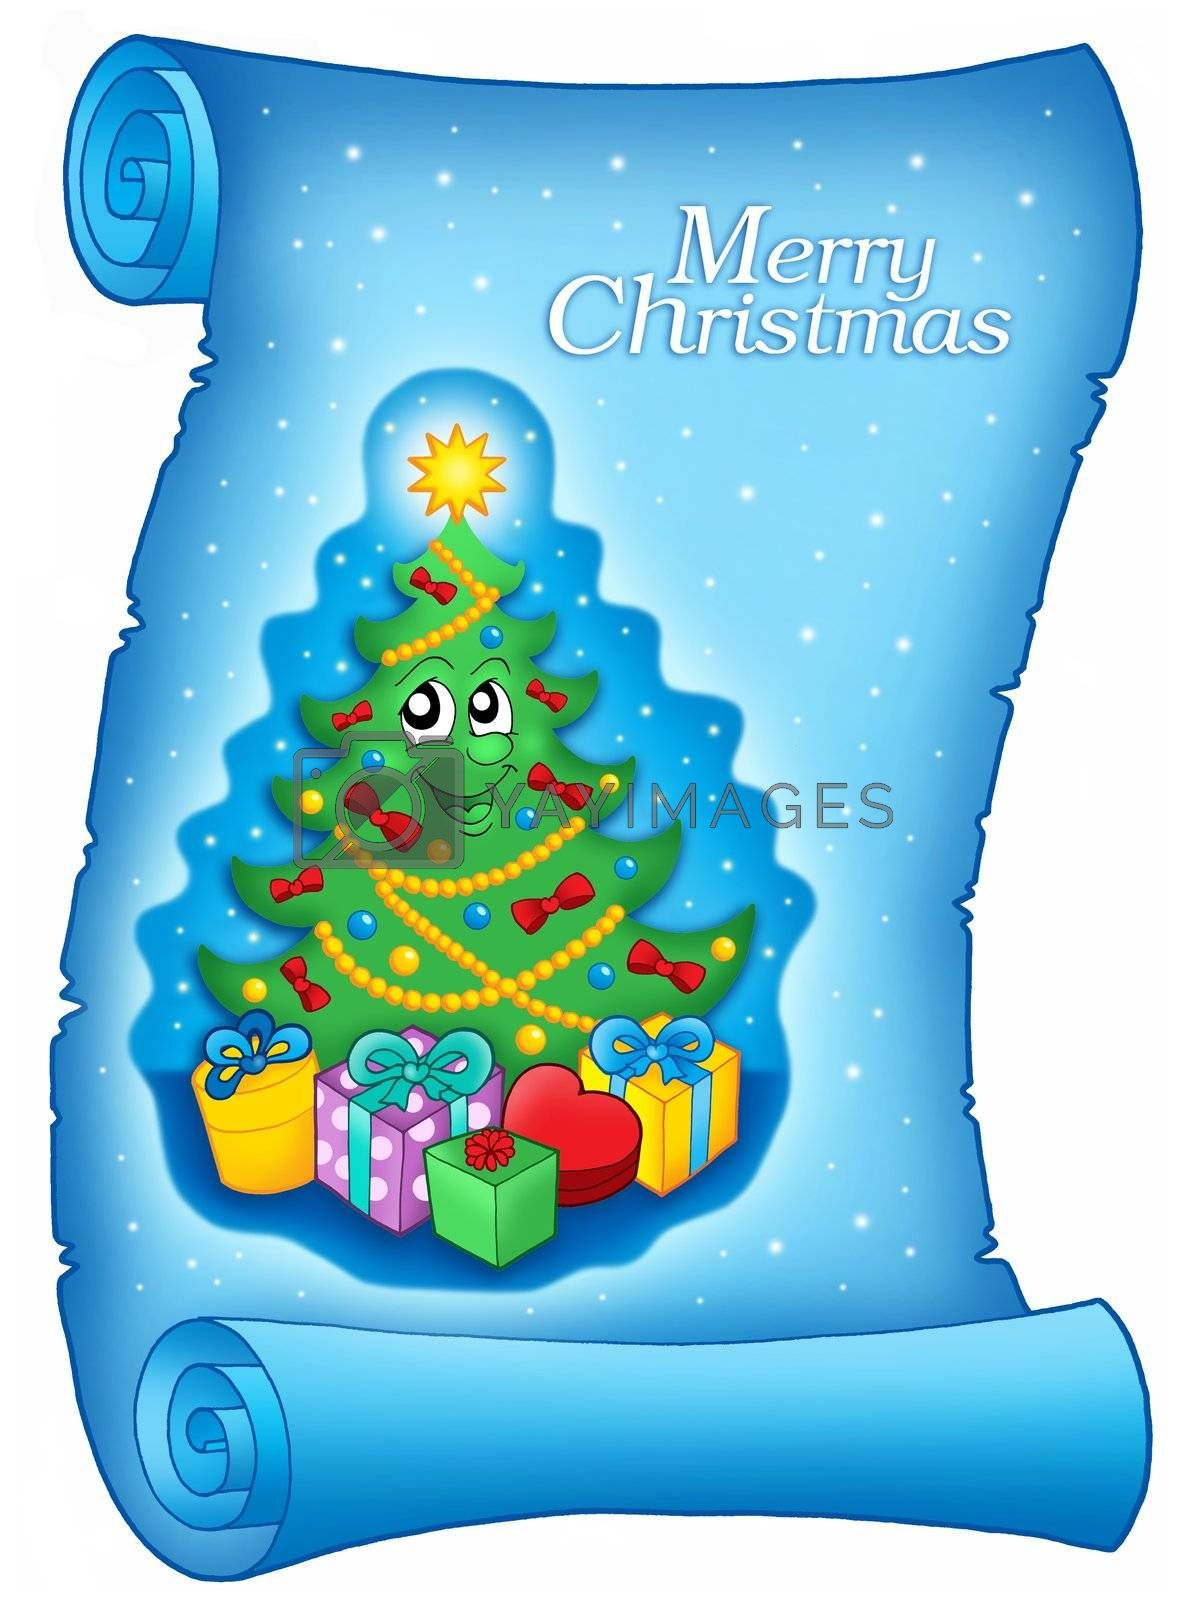 Blue parchment with Christmas tree - color illustration.